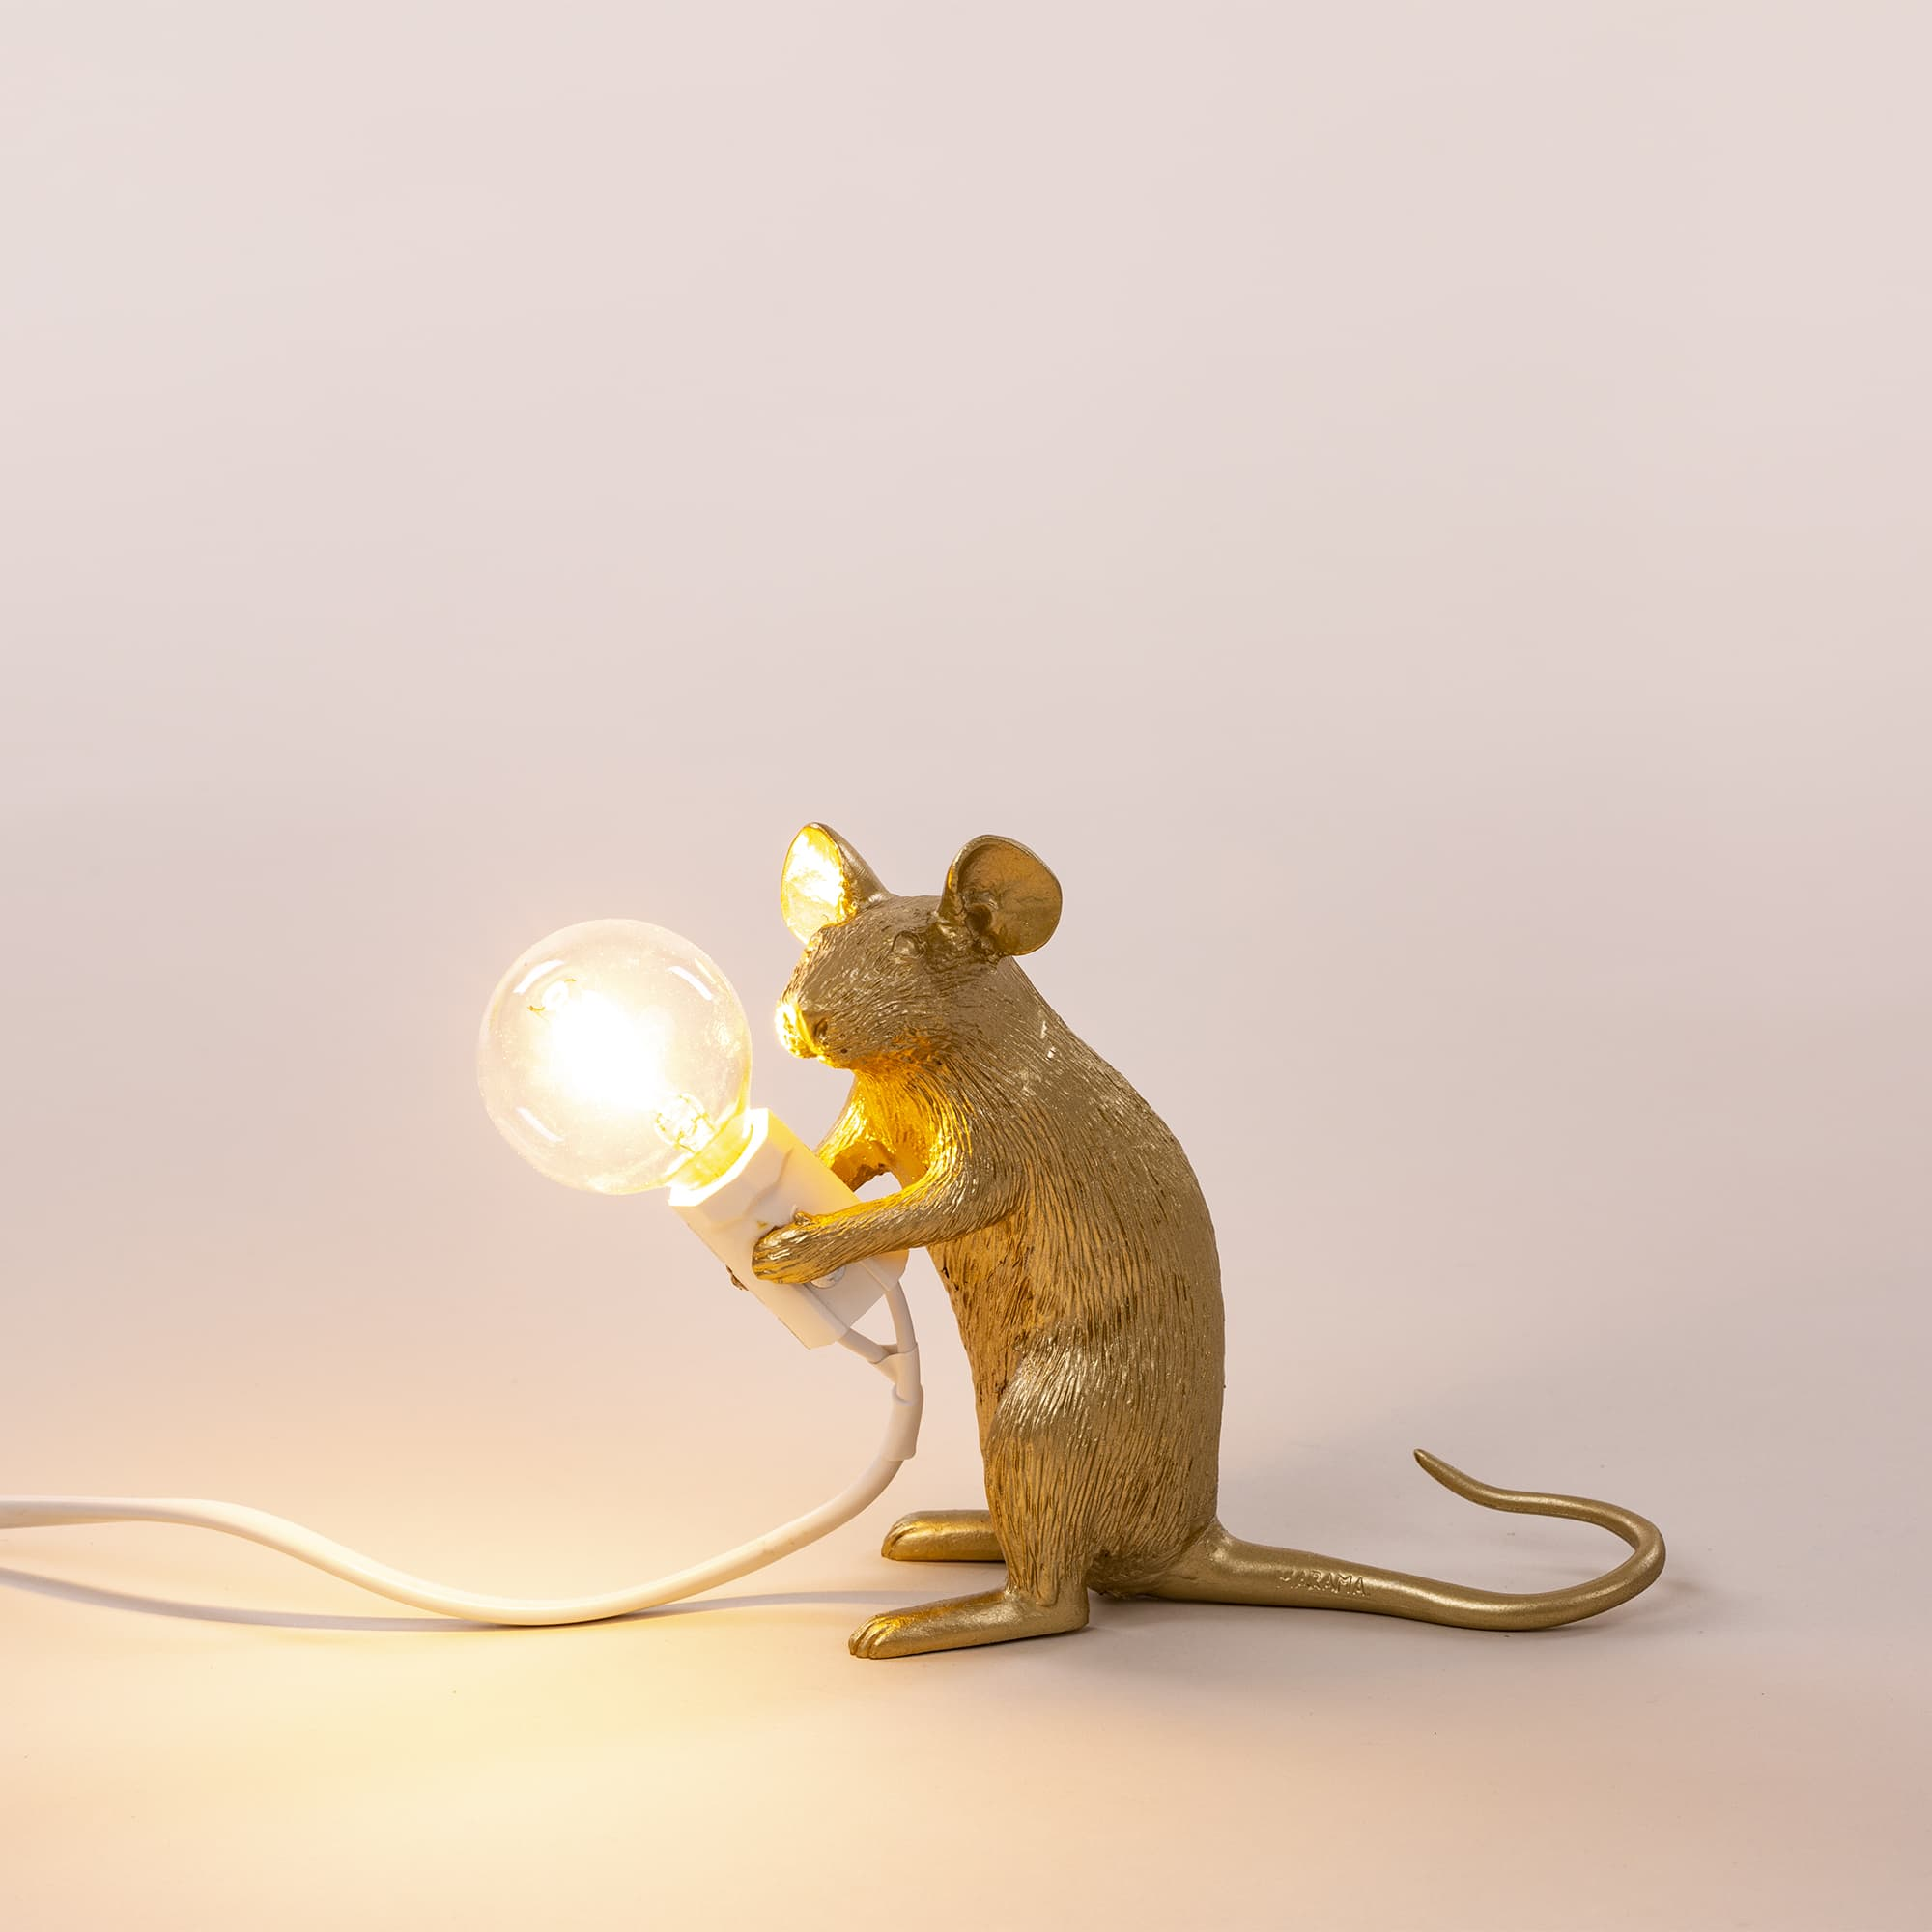 Mouse lamp sitting gold